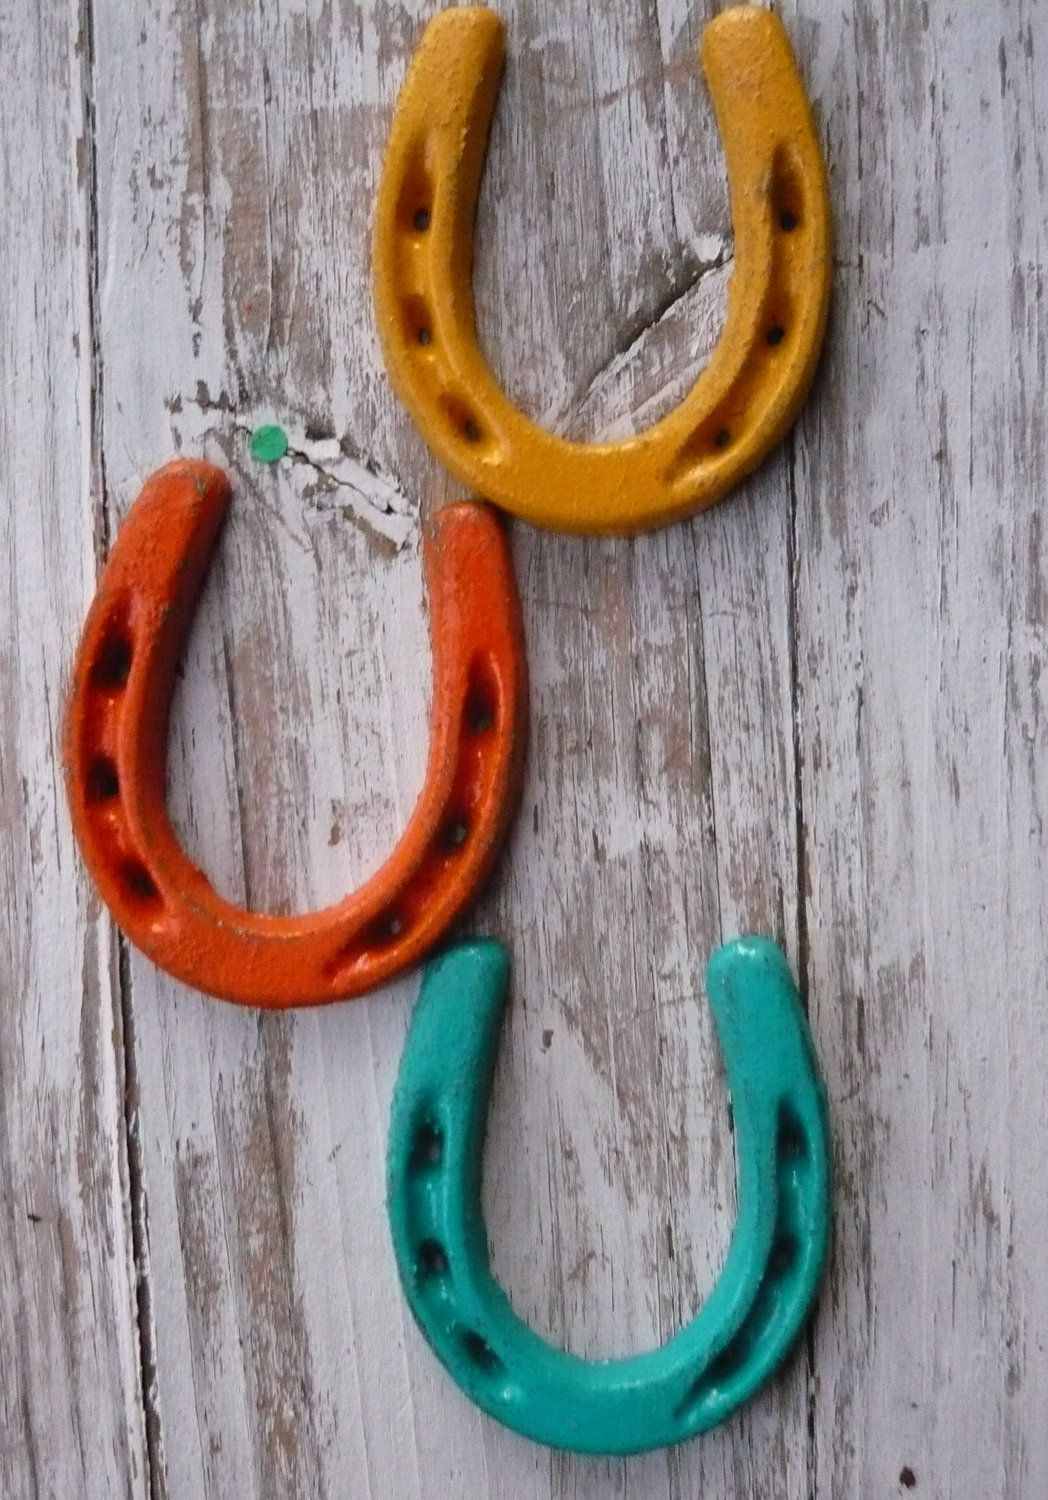 Good karma for you home3 horse shoes for your doorways 1295 good karma for you home3 horse shoes for your doorways 1295 buycottarizona